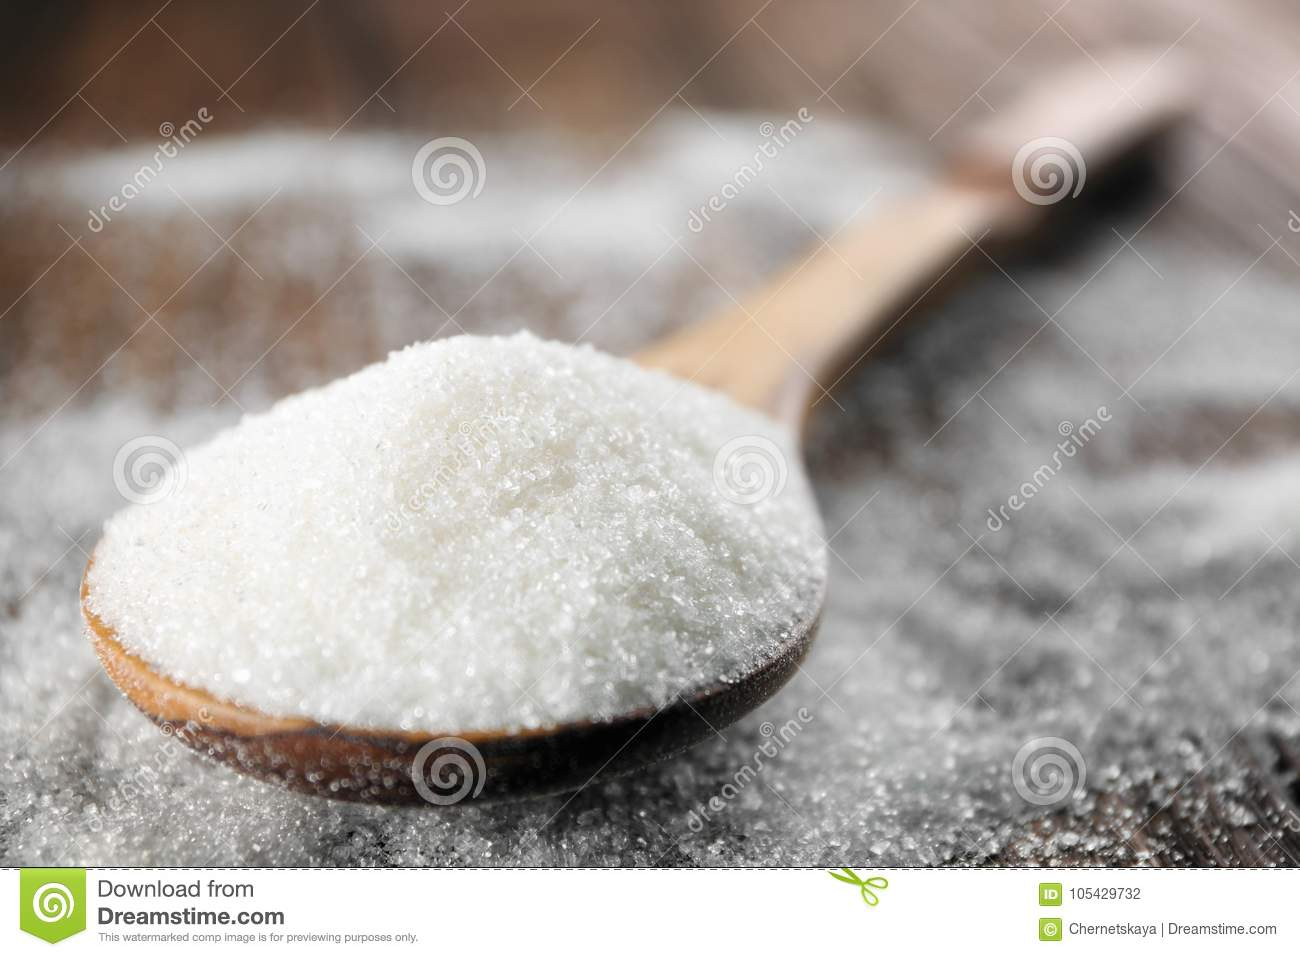 Spoon with white sugar